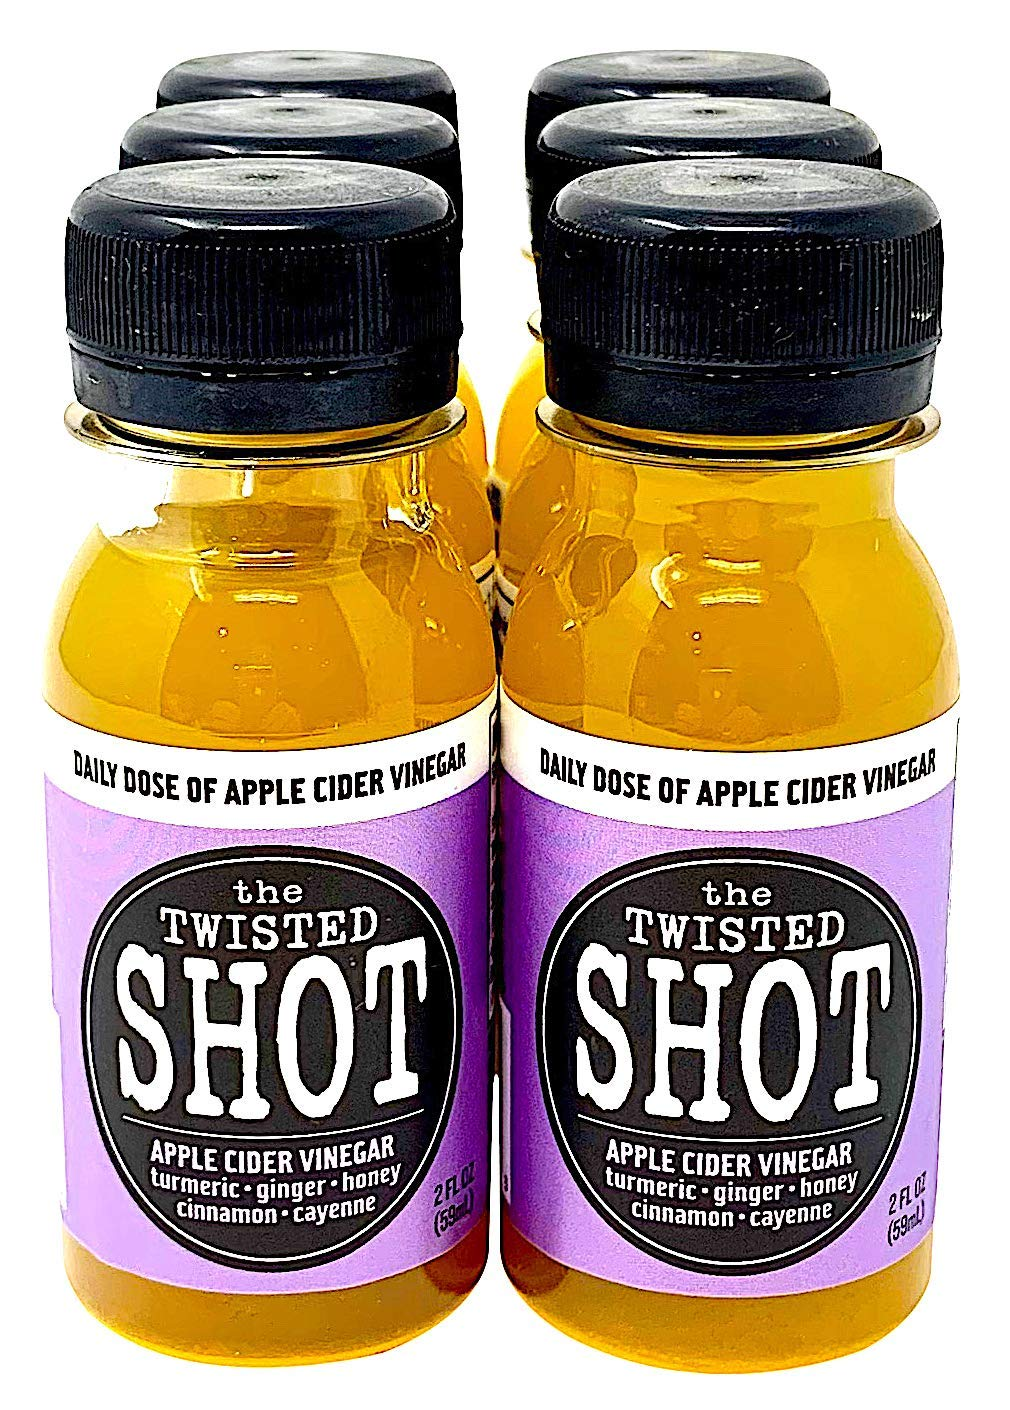 The Twisted Shot - Organic Apple Cider Vinegar Shots with Turmeric, Ginger, Cinnamon, Honey & Cayenne - 6-Pack of 2oz Shots